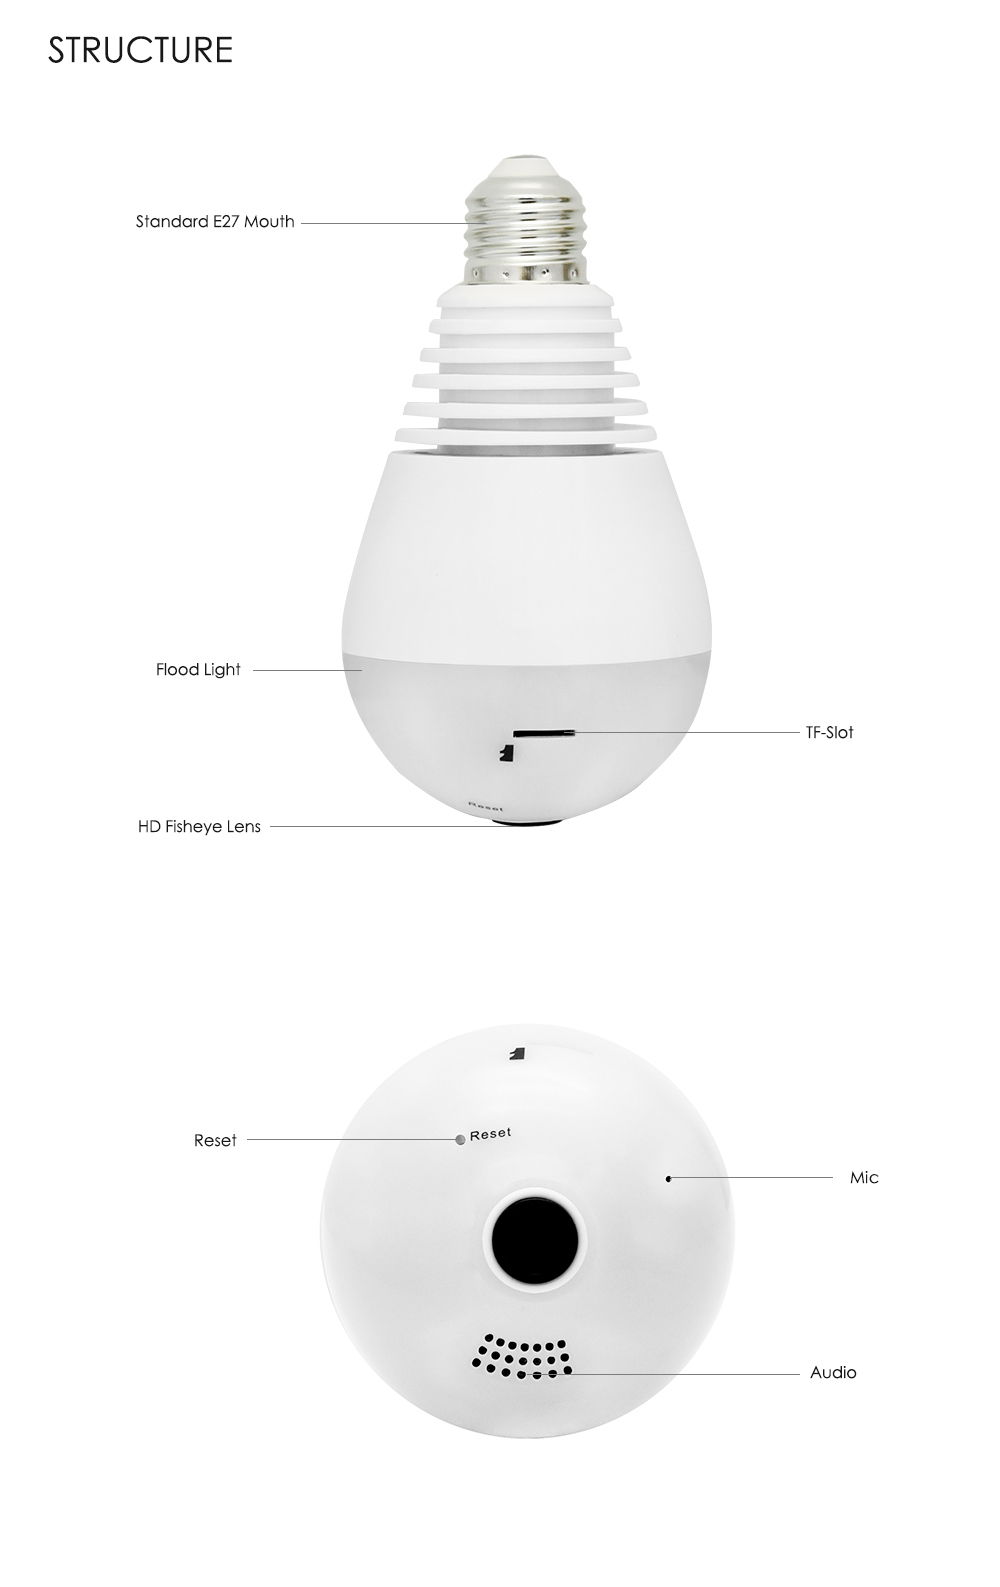 Wistino 960P Wireless VR Panoramic IP Camera Bulb Light Wifi FishEye 360 degree CCTV Surveillance Security Monitor Comone 1 (10)